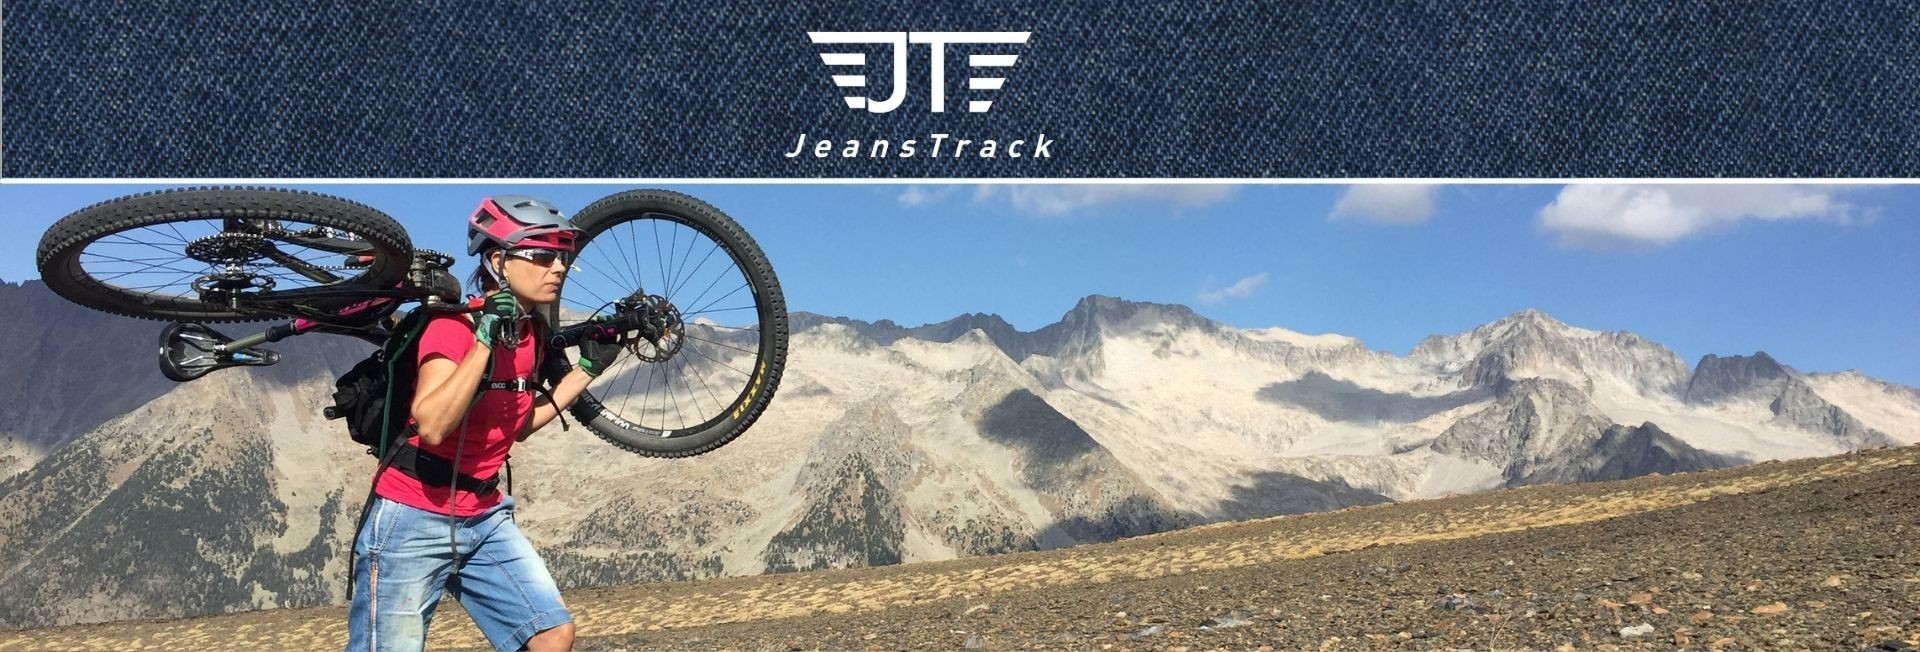 JEANSTRACK ropa para mountain bike mujer